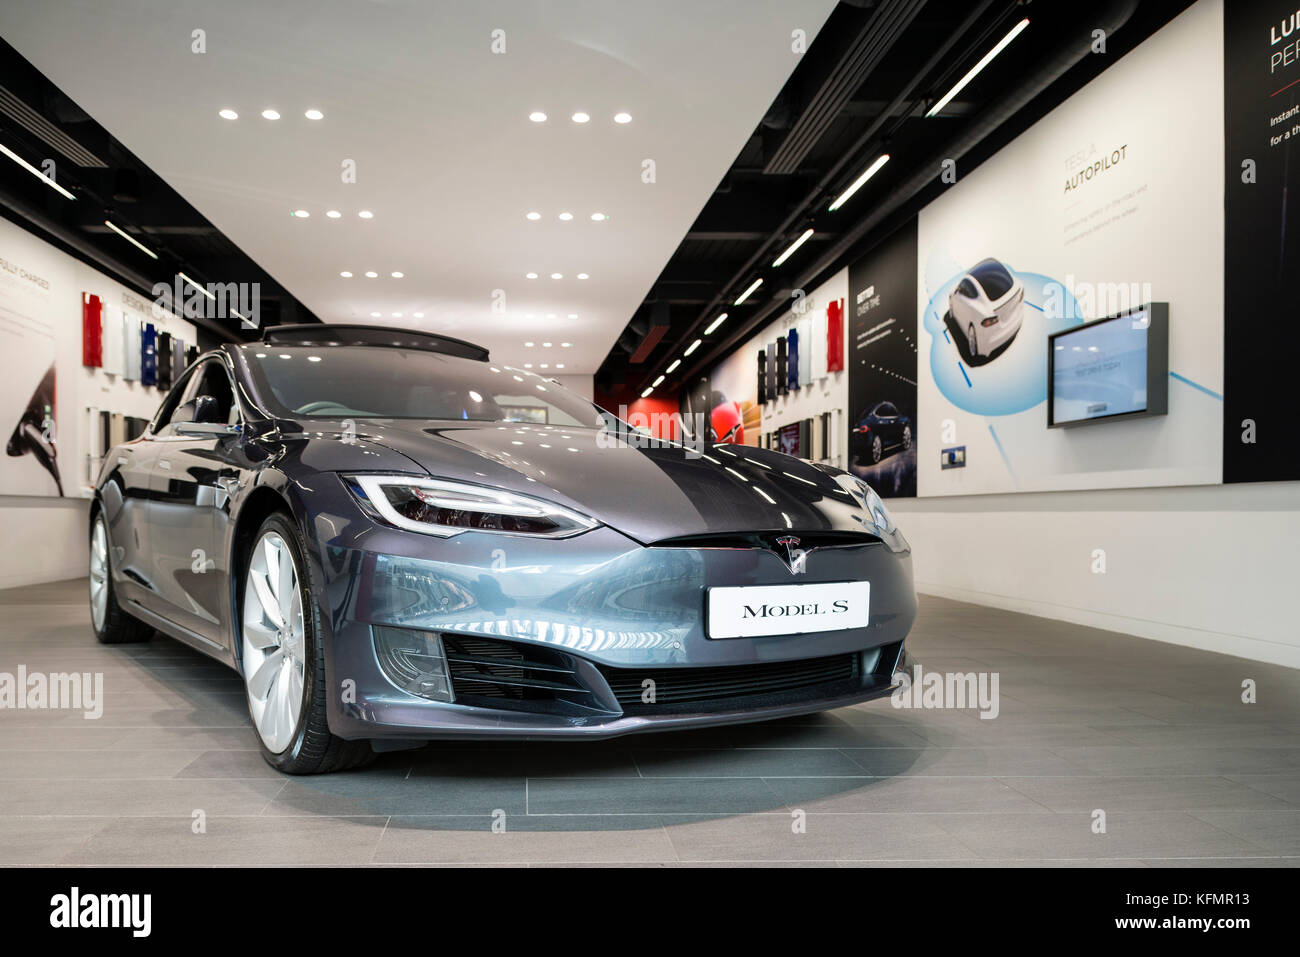 Tesla electric car model s for sale in a pop up store, UK. - Stock Image